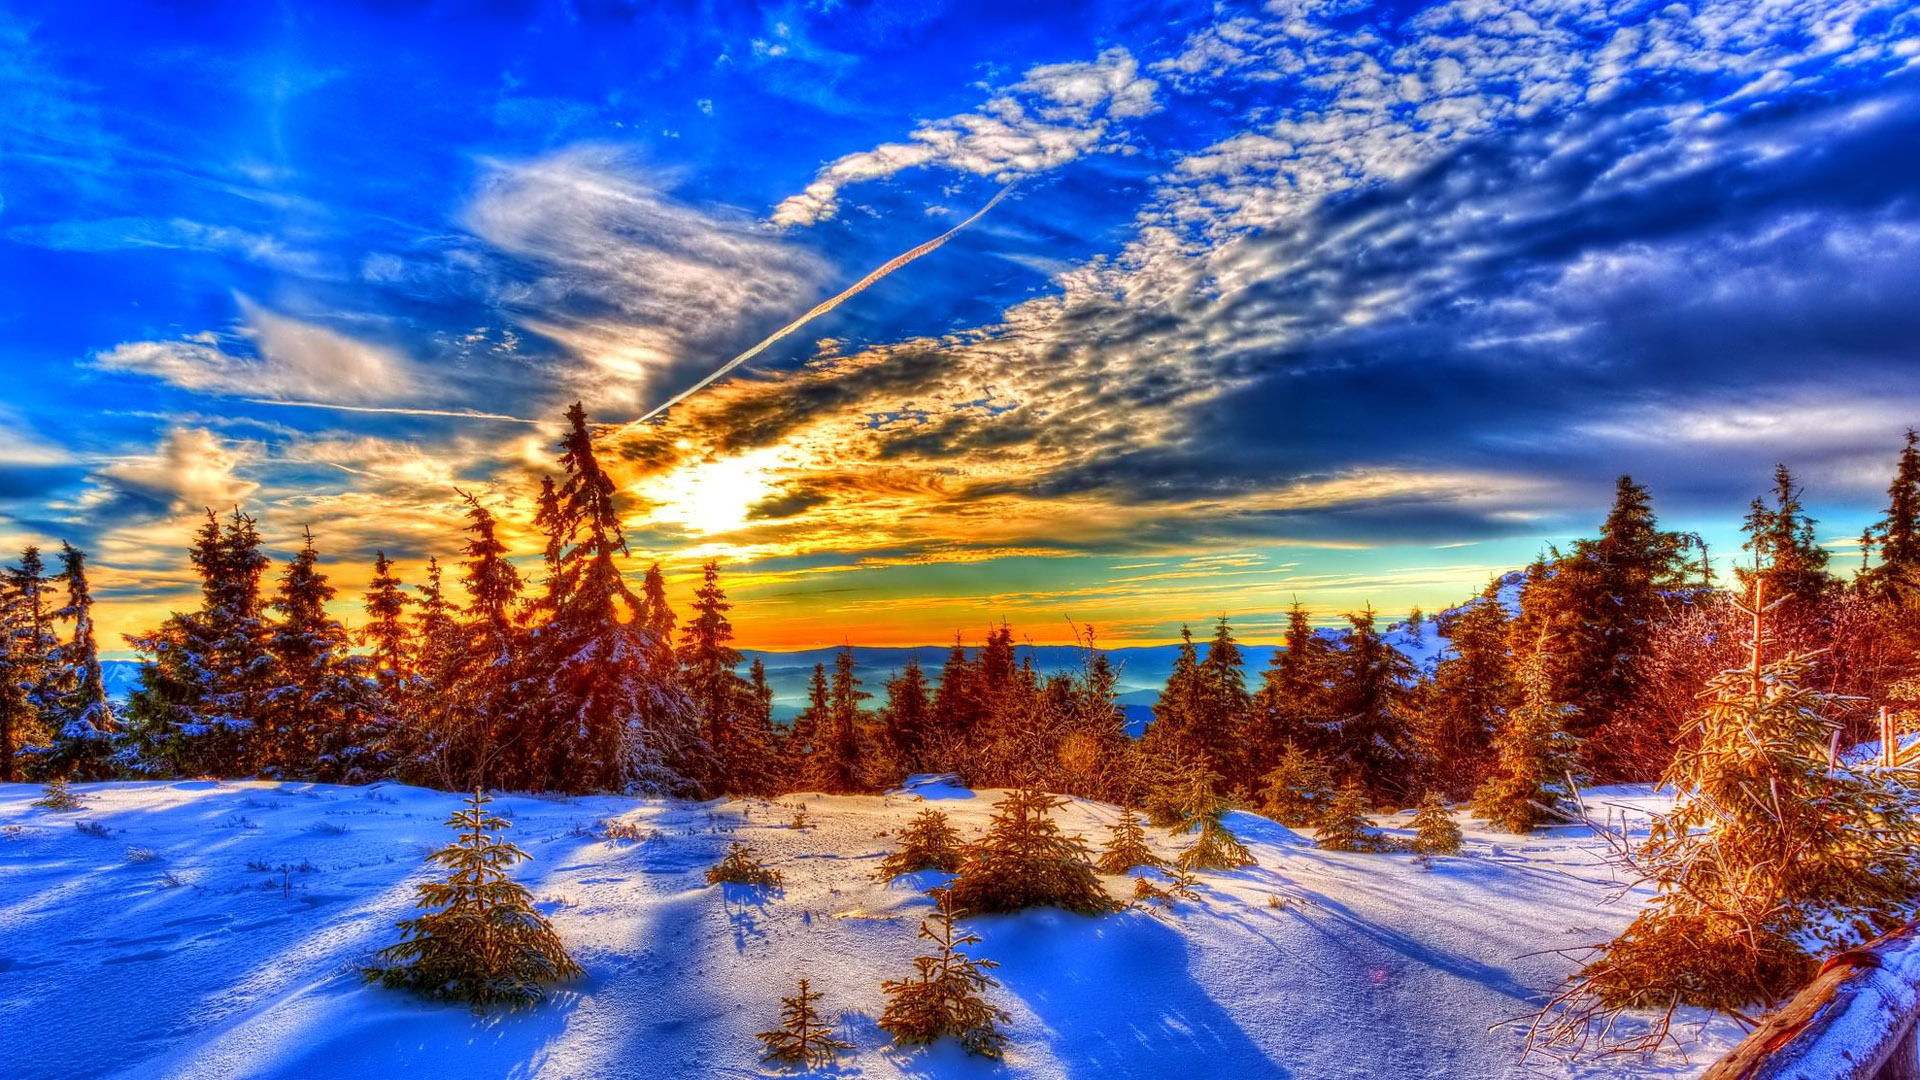 free winter wallpaper HD 1920x1080